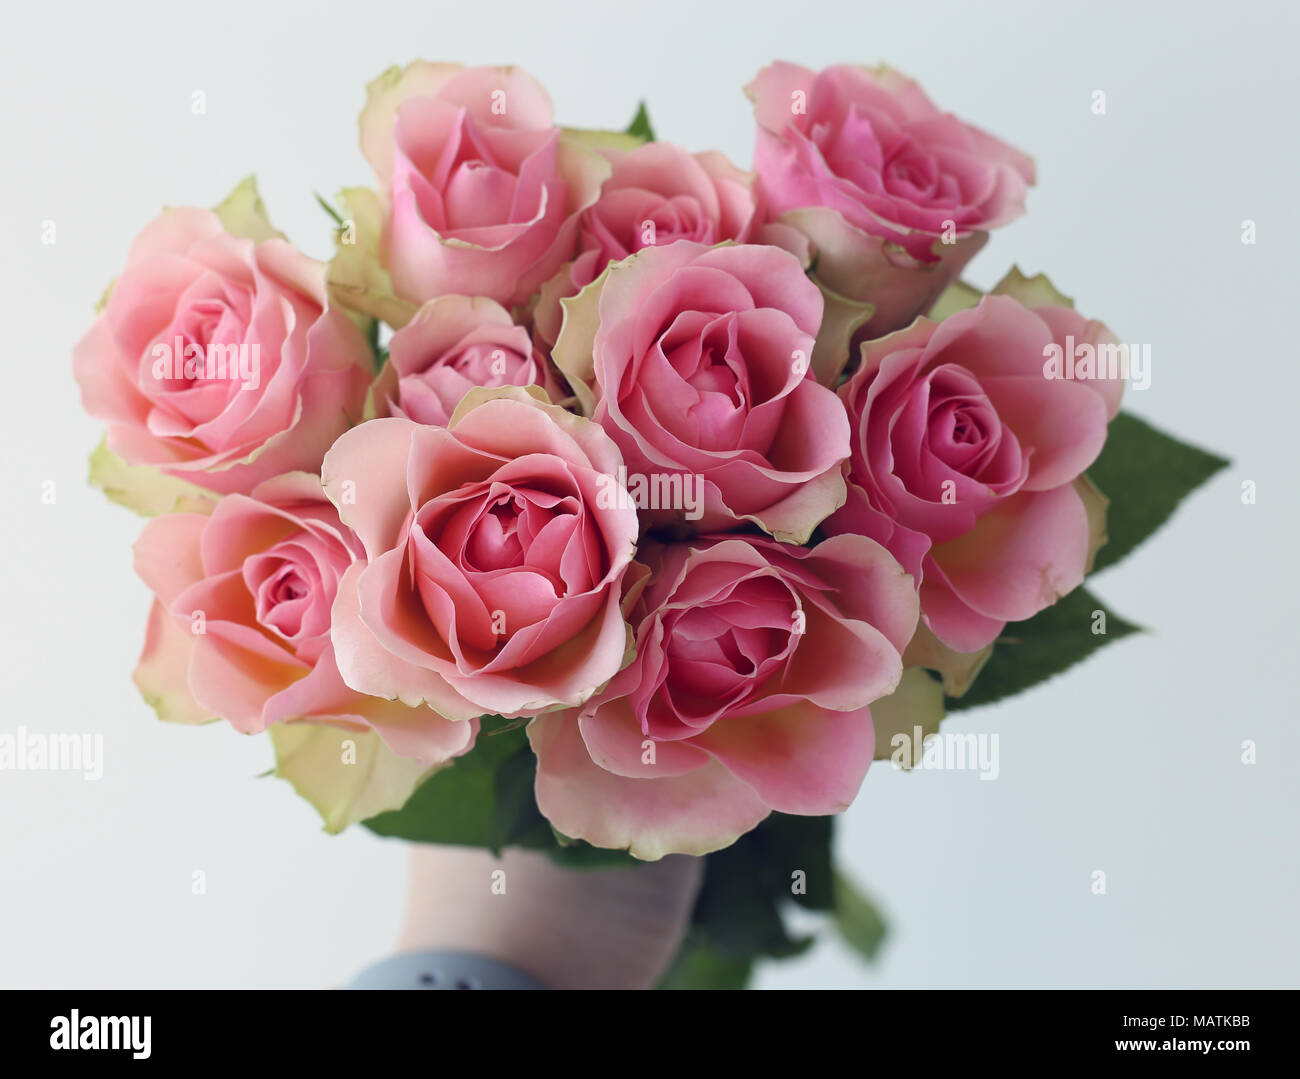 A Bouquet Made Of Light Pink Blush Colored Roses Held By A Hand Of